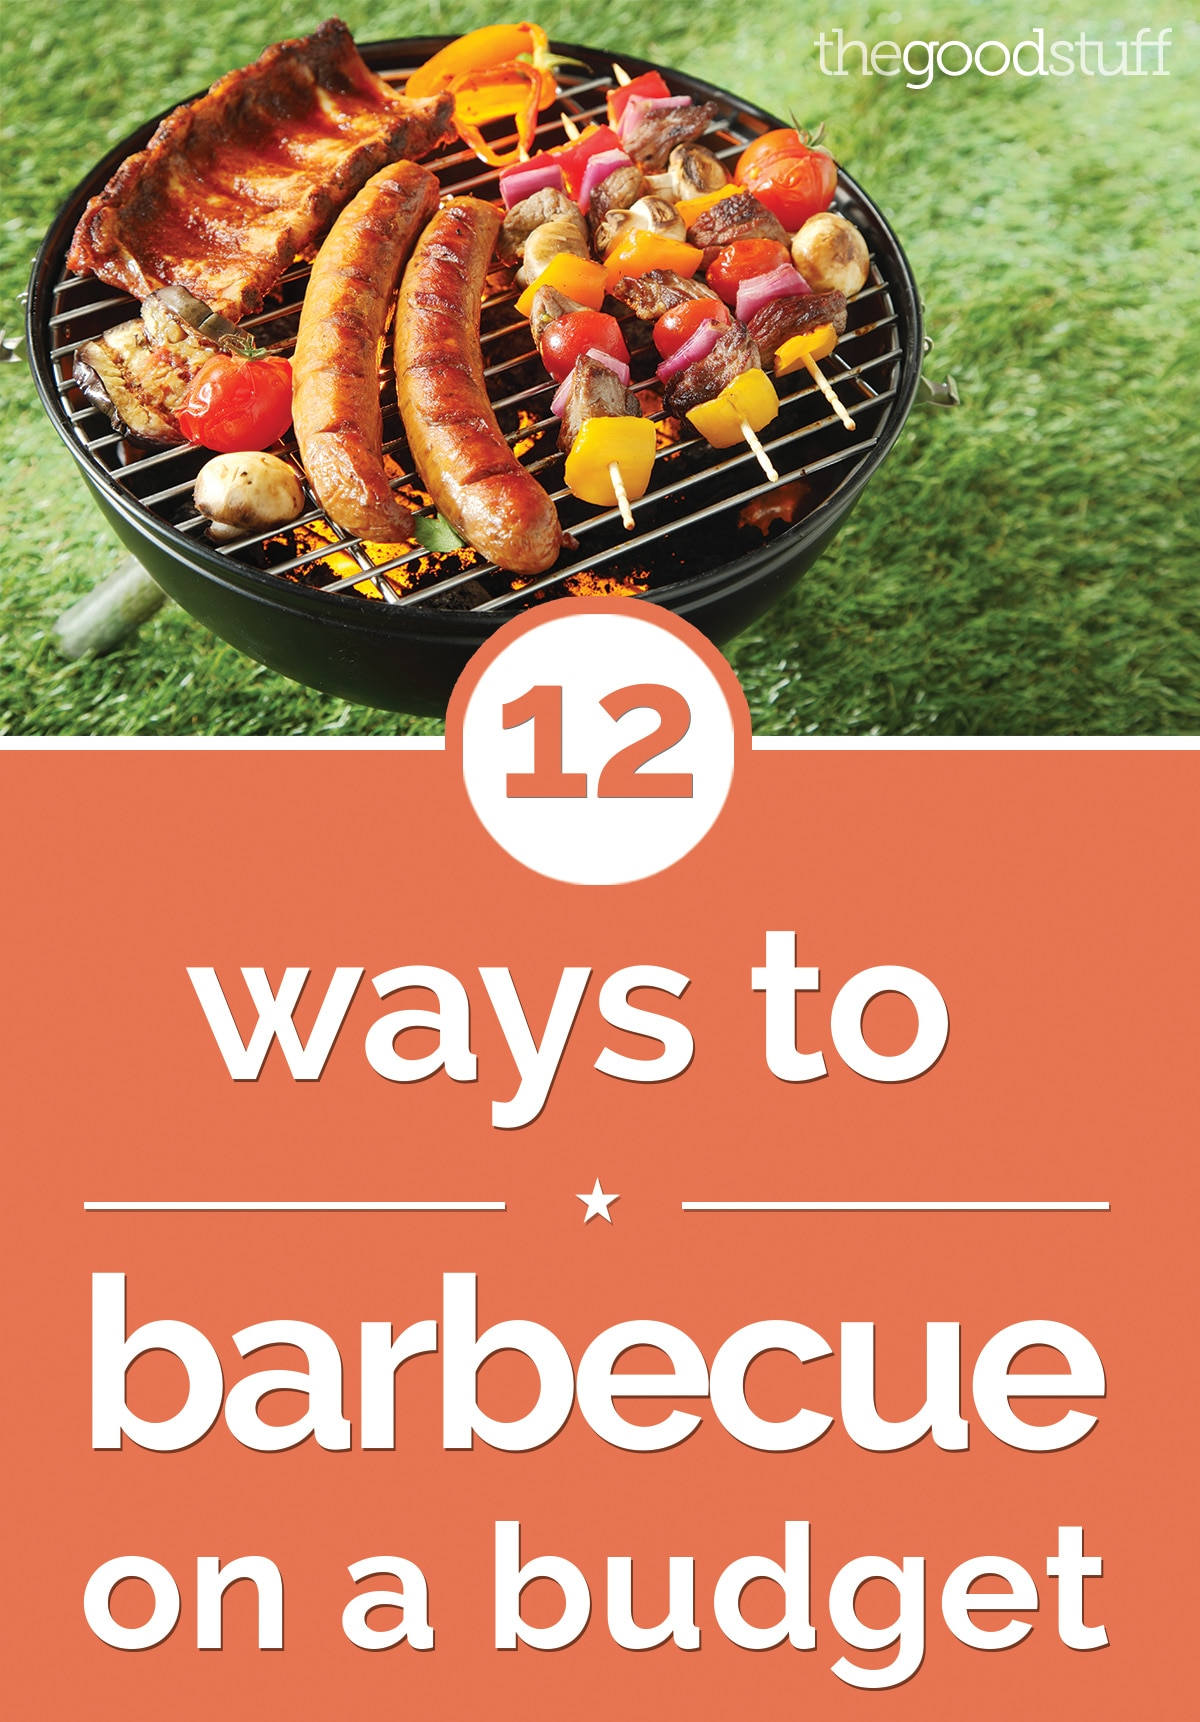 12 Ways to Barbecue on a Budget | thegoodstuff